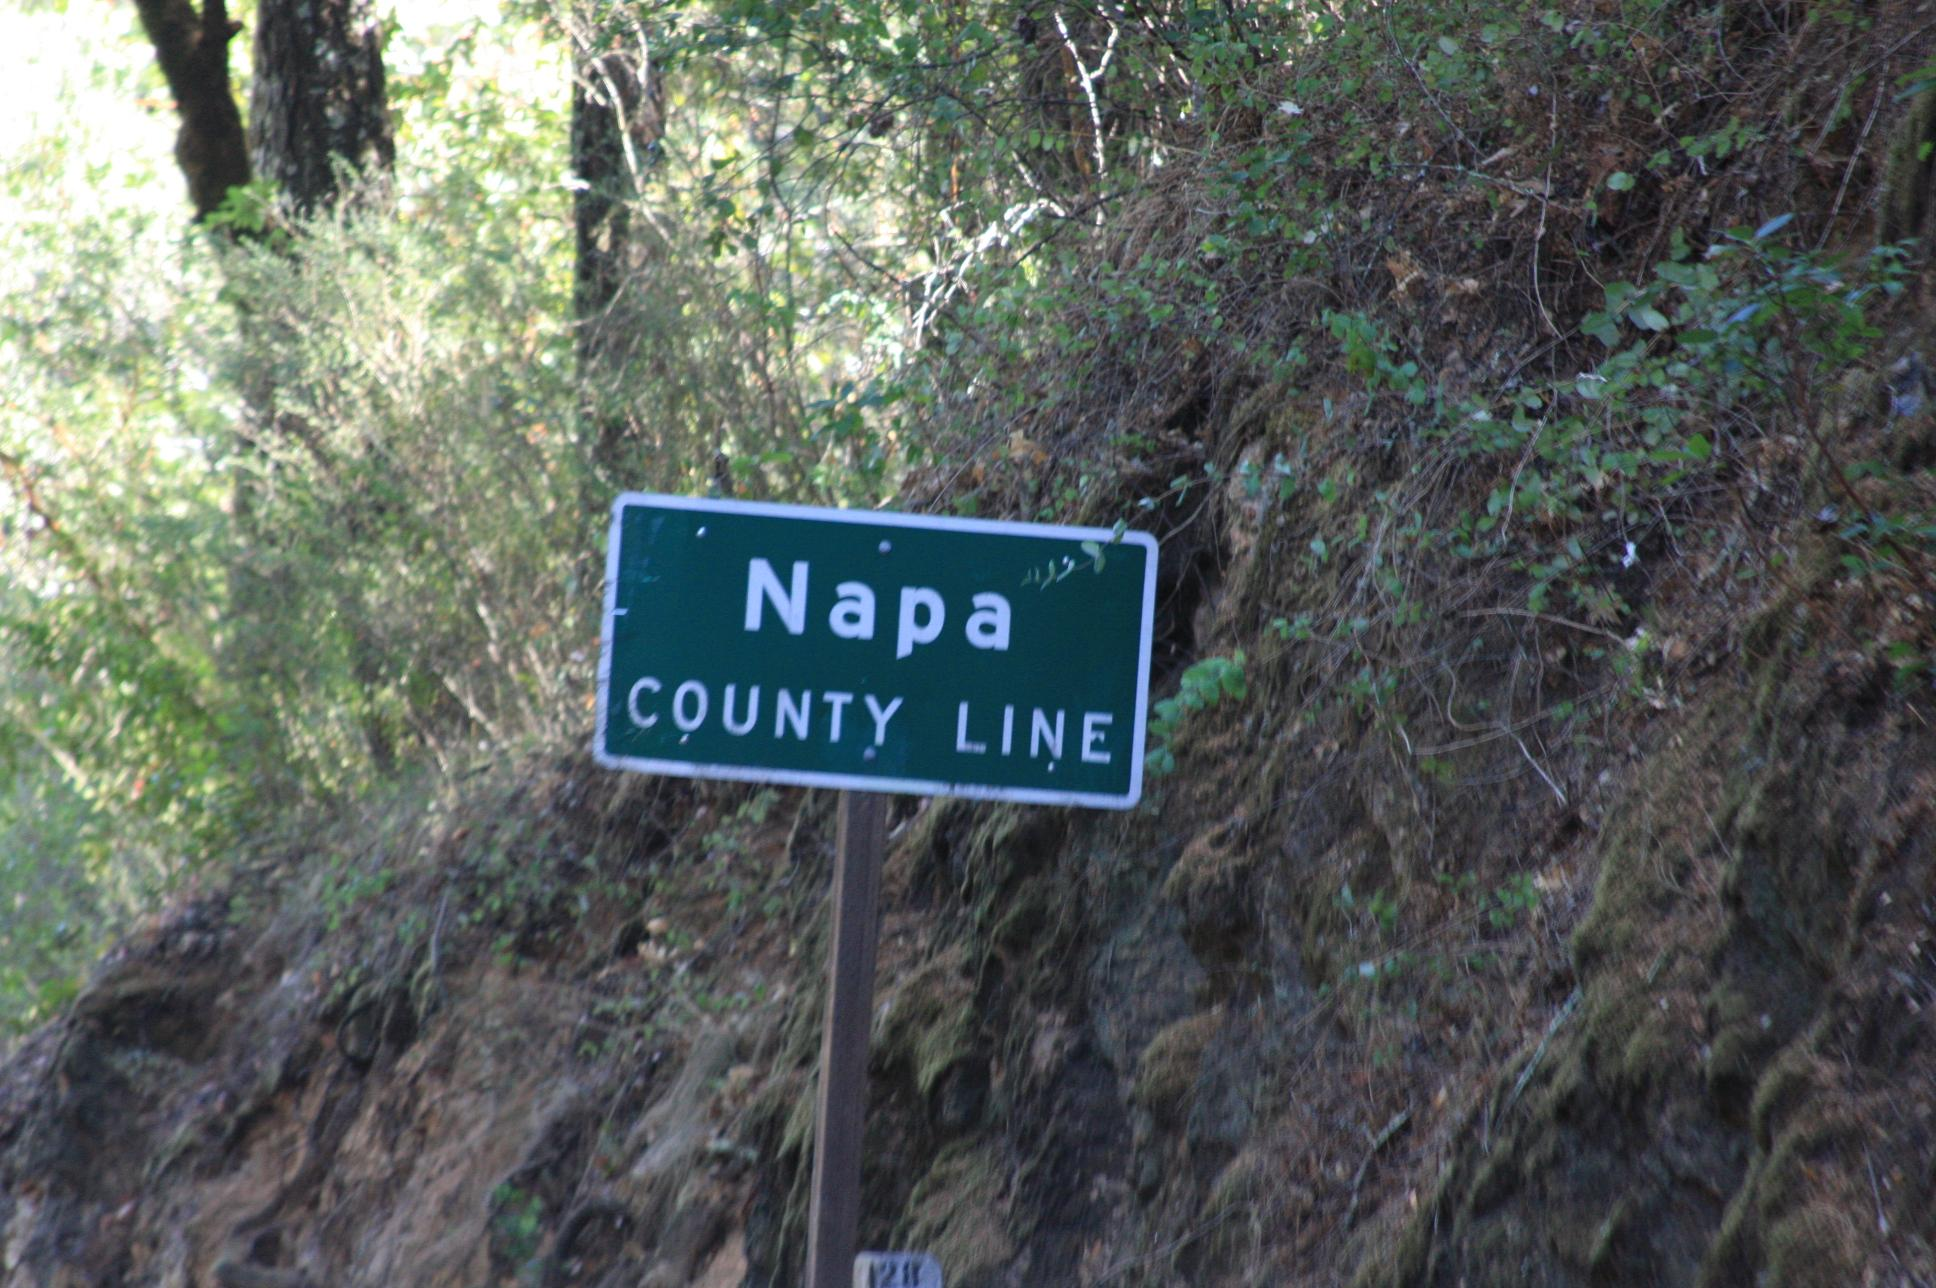 Napa - so this is where all our money goes...